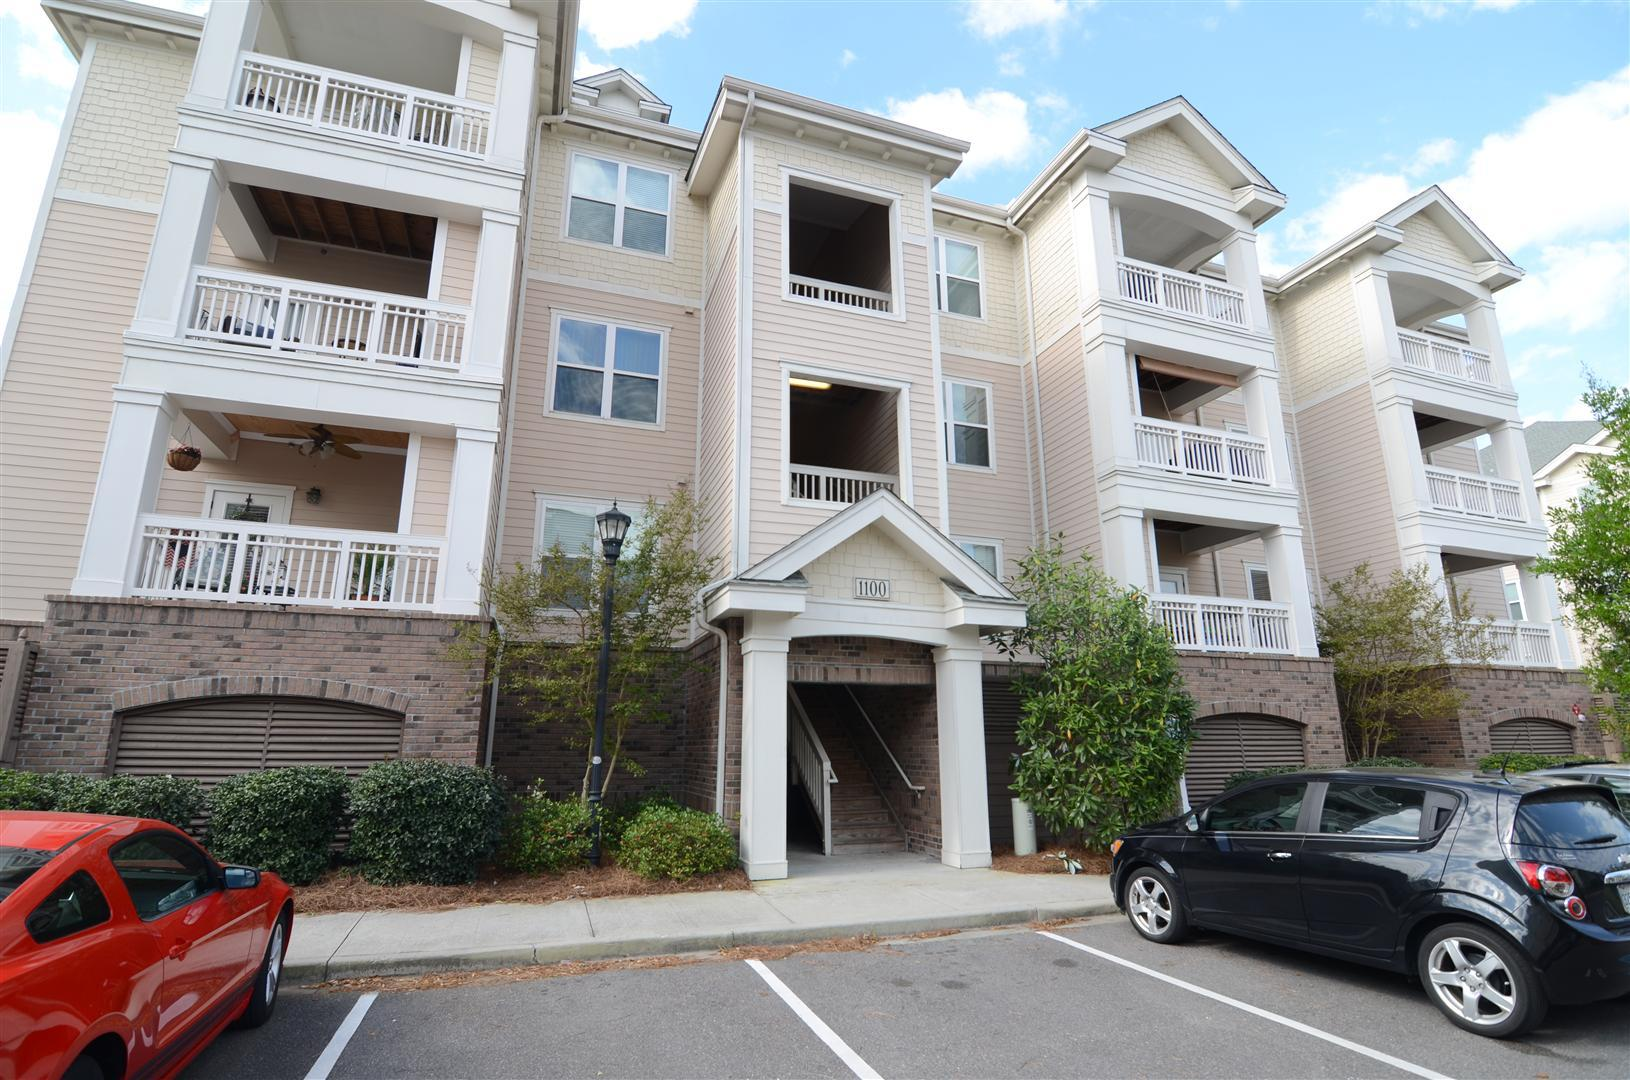 2244 #1115 Ashley Crossing Drive Charleston, Sc 29414